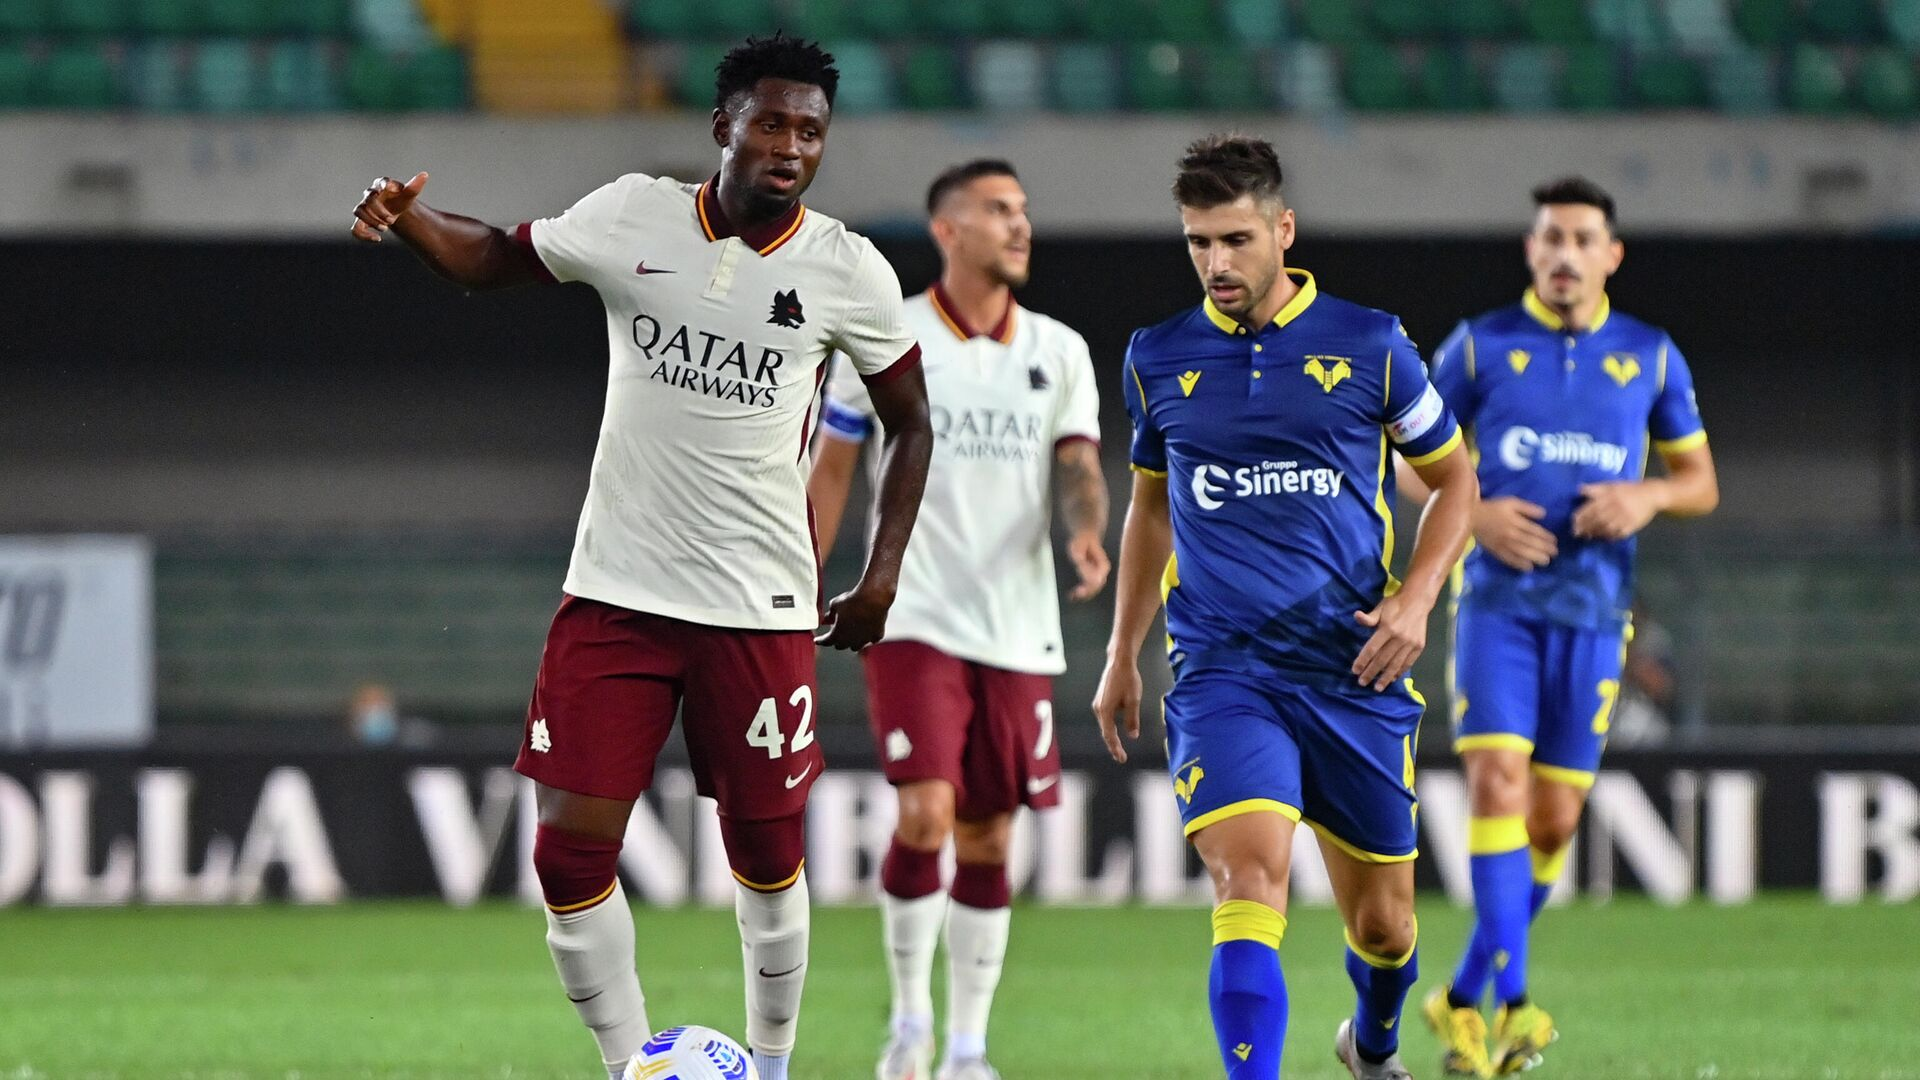 AS Roma's Guinean midfielder Amadou Diawara (L) controls the ball during the Italian Serie A football match Hellas Verona vs As Roma on September 19, 2020 at Marcantonio Bentegodi stadium in Verona. - Roma's match against Hellas Verona ended 0-0, but since Diawara, 23, was added by mistake by Roma in their under-22 list, the club could be assigned a 3-0 loss to Verona. (Photo by Alberto PIZZOLI / AFP) - РИА Новости, 1920, 22.09.2020